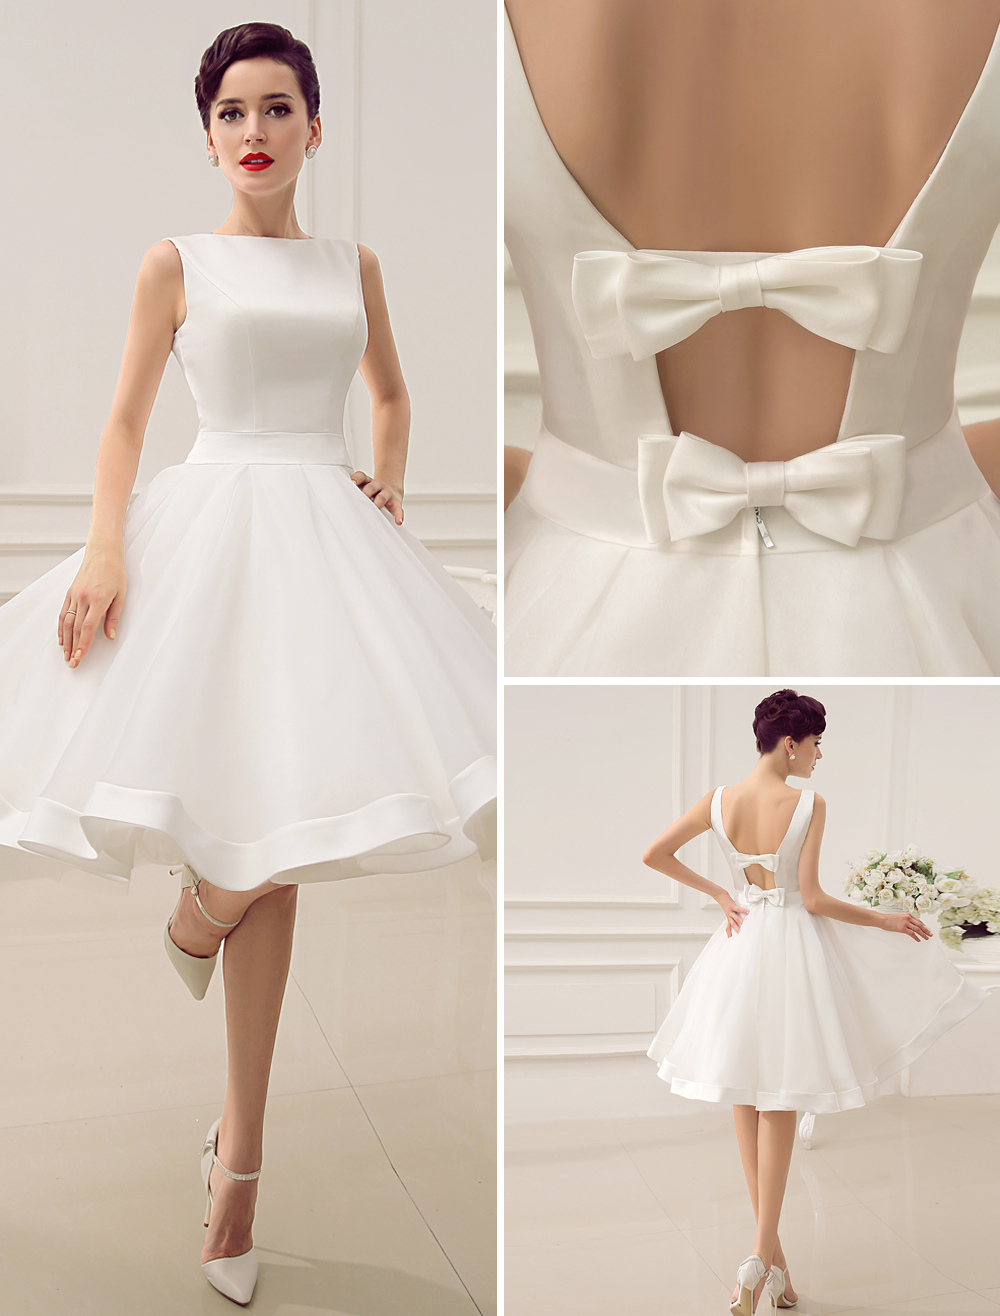 Short Wedding Dresses,Short Bridal Dresses,short wedding dresses,short wedding dress,Short Ivory Wedding Dress,Short Wedding Dress 2015,Short Wedding Dress 1950s ,Short Backless Wedding Dresses,Short Bridal Gowns ,1950s Short Wedding Dresses,Short Wedding Vintage Dress,Satin Short Wedding Dress,